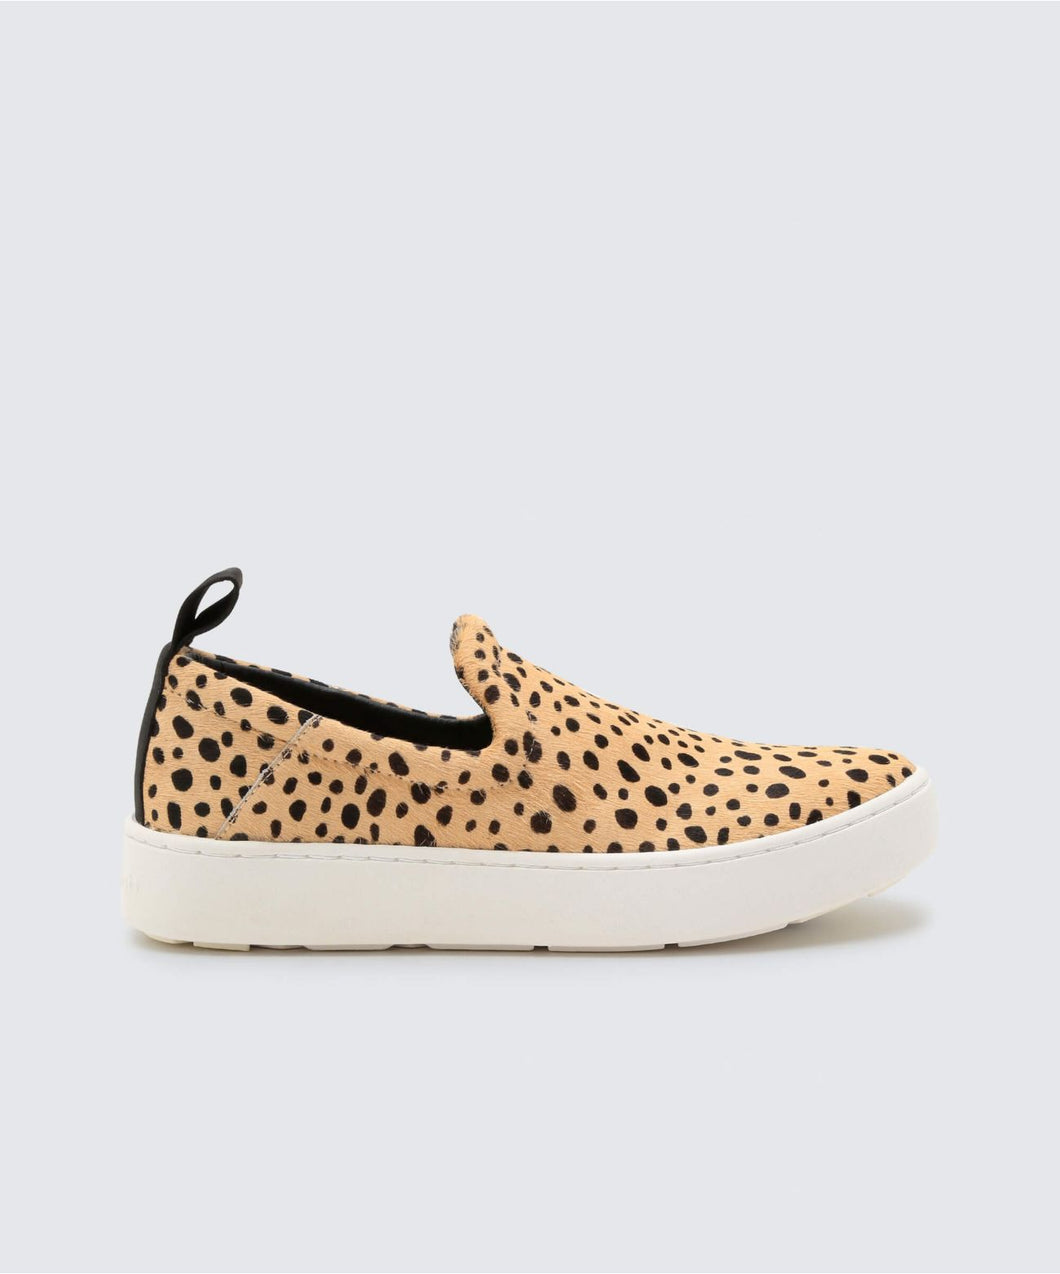 TAG SNEAKERS IN LEOPARD -   Dolce Vita